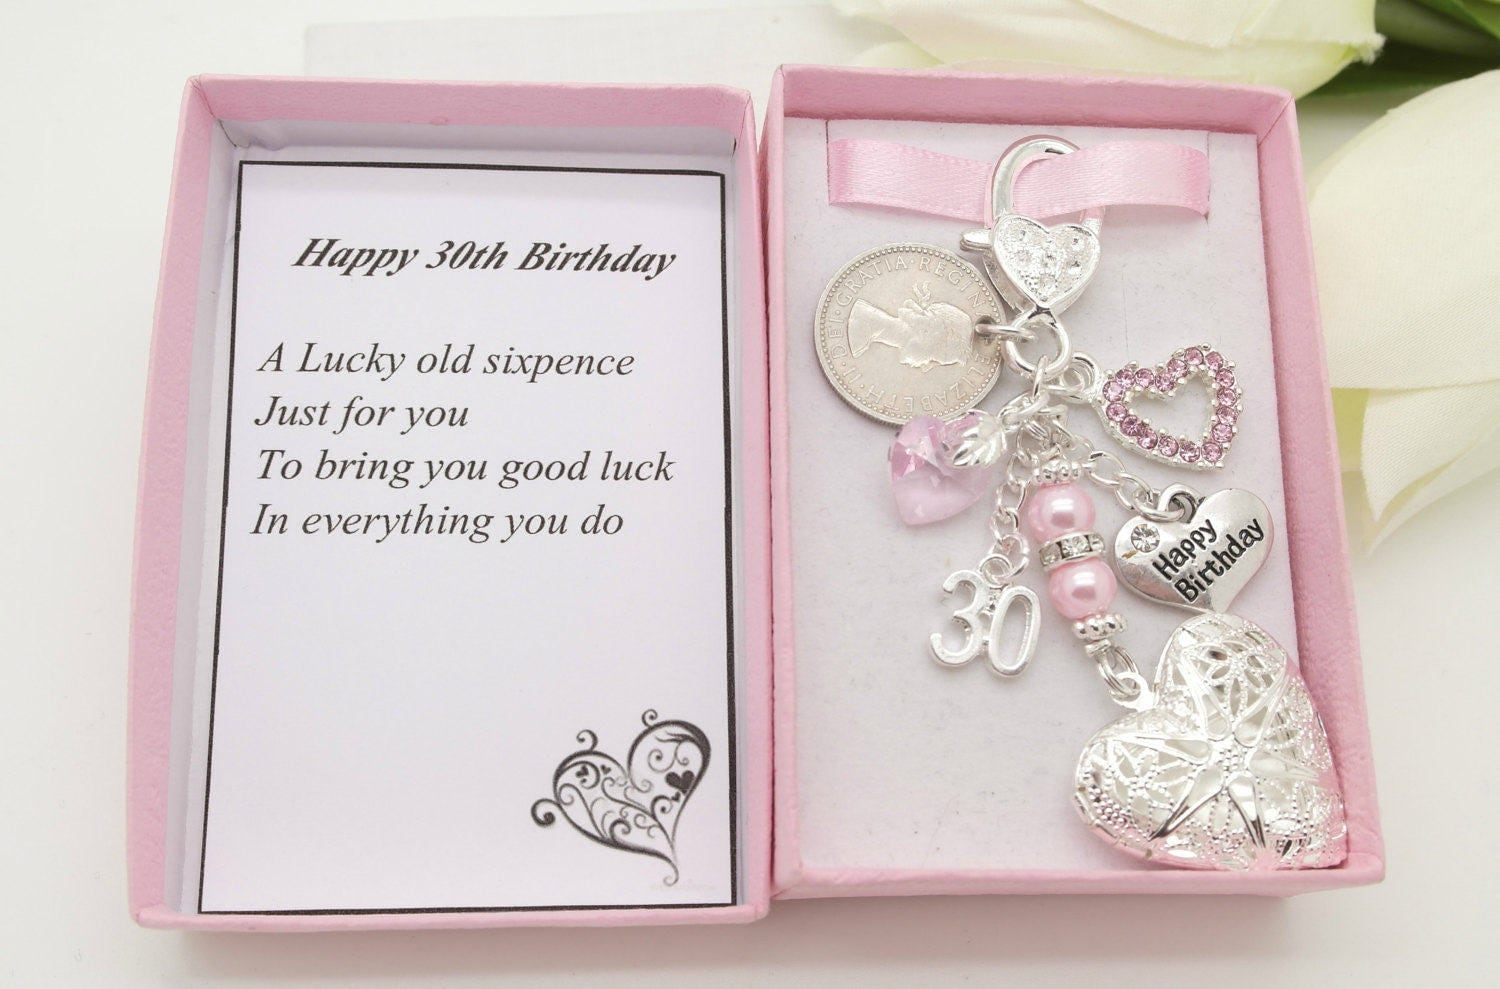 Personalised happy 30th birthday gift. Pink heart locket lucky sixpence charm keyring  gift box choice of heart and number charm